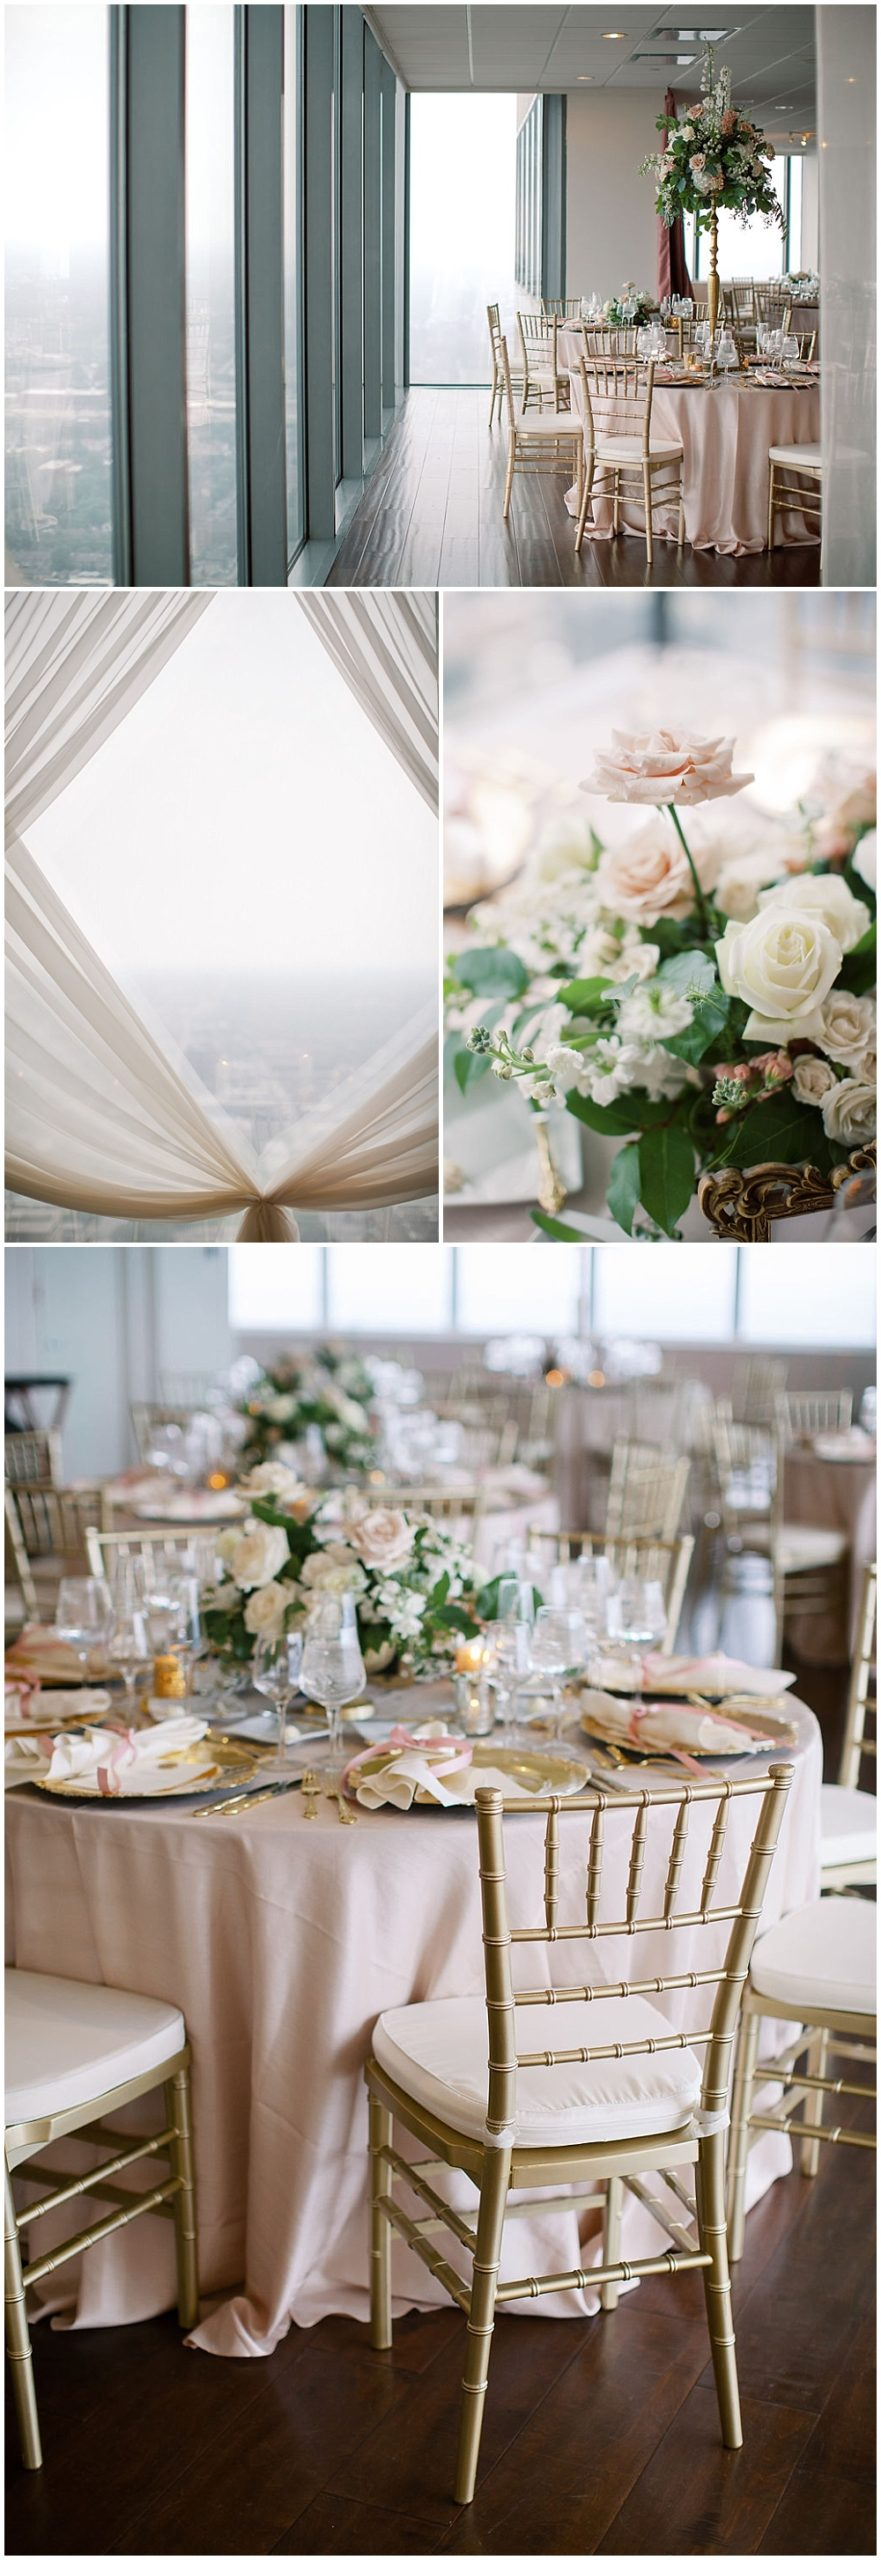 Dreamy wedding reception overlooking the downtown Indianapolis skyline. Full of floor to ceiling draping, mauve and gold accents, custom wax seal place cards, personalized place settings and a chandelier suspended above the cake table. No detail was left behind for this summer wedding at D'Amore.